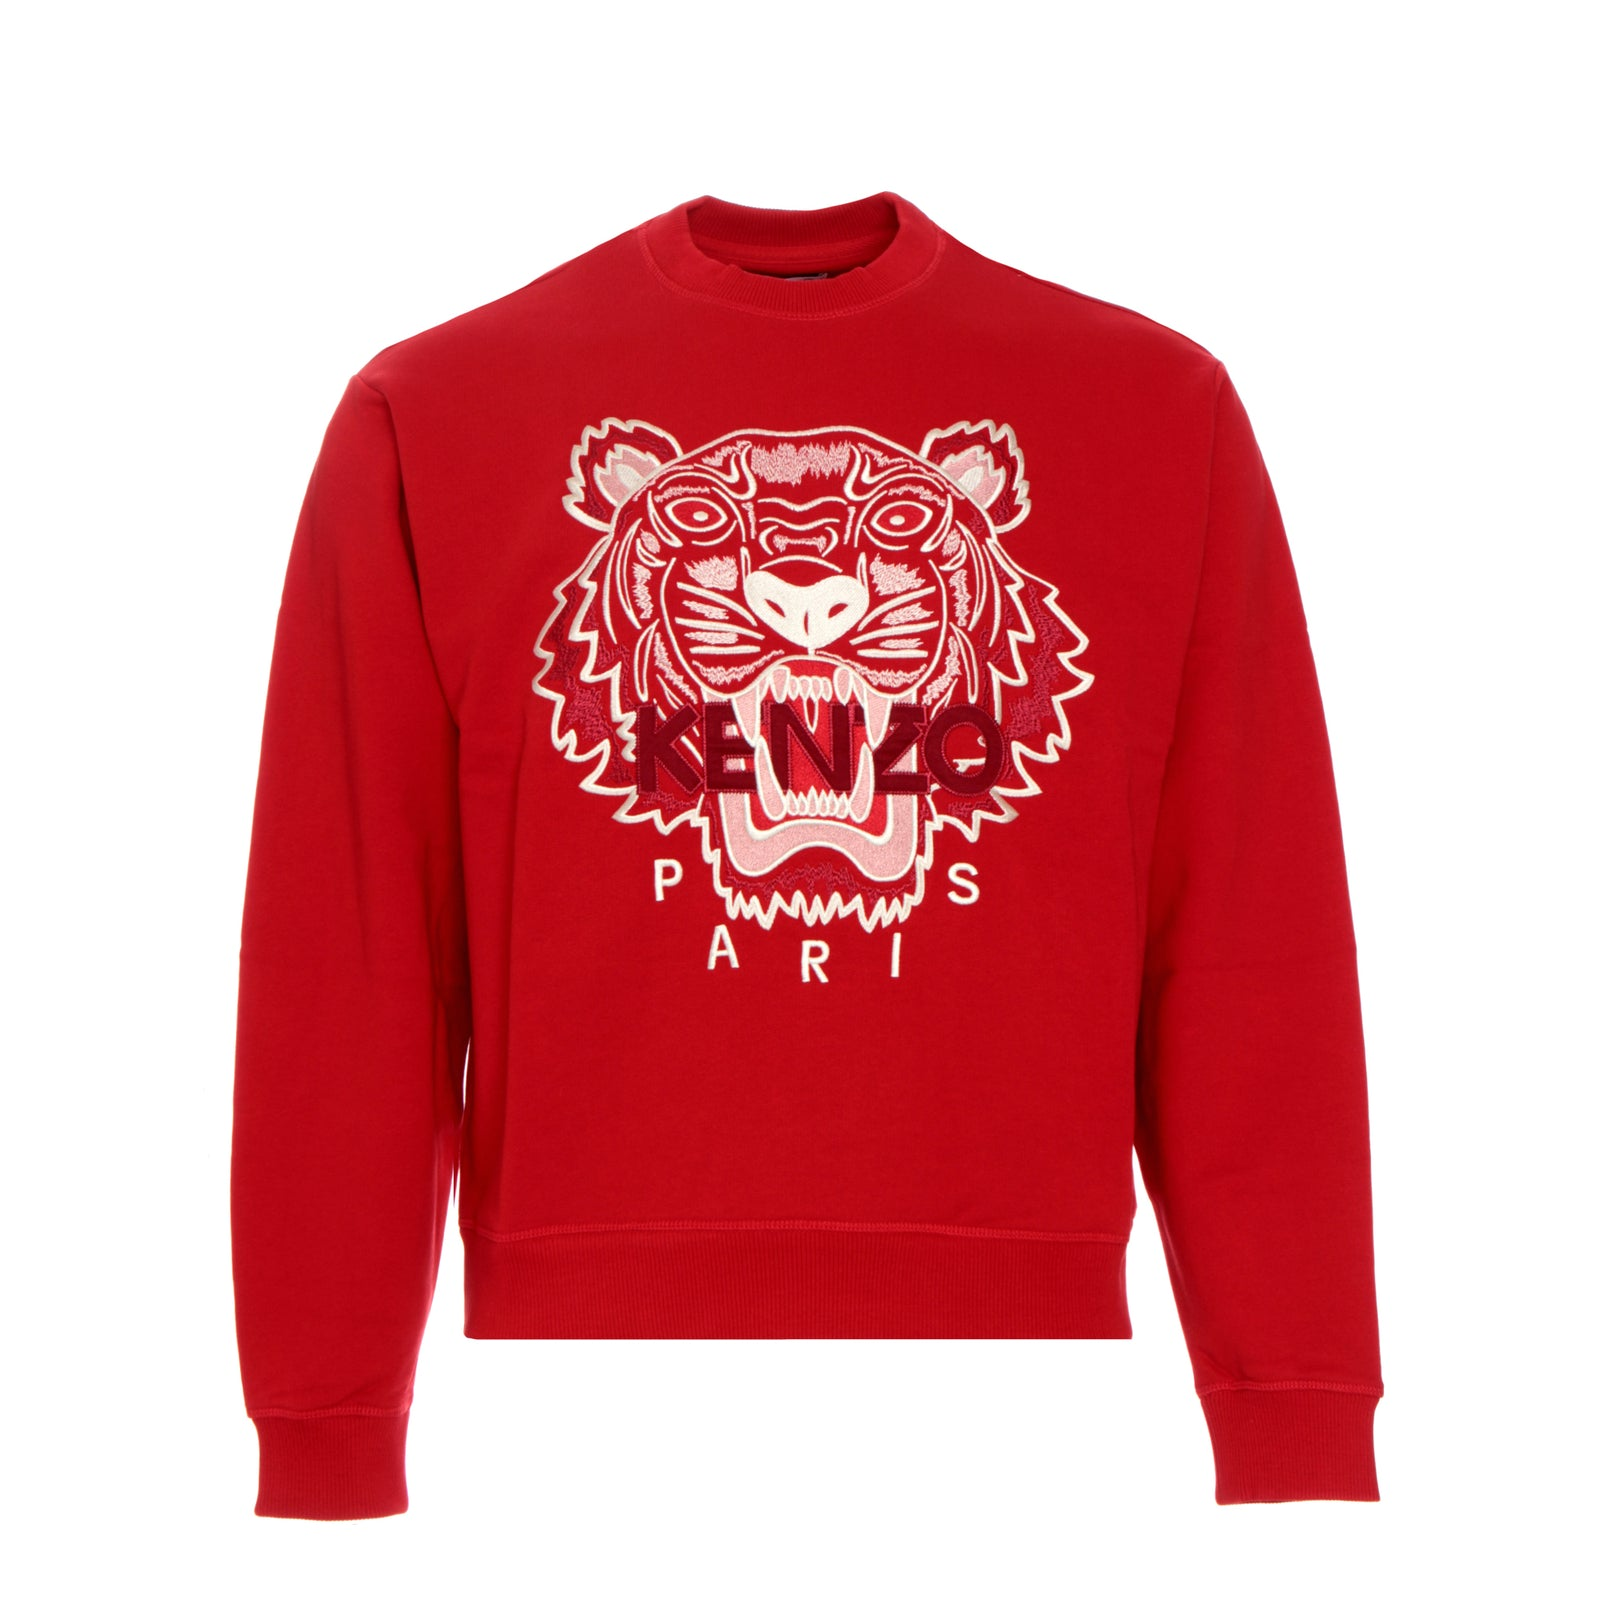 Kenzo Paris FW20 Classic Tiger Crewneck Men's Pullover Sweater  Red